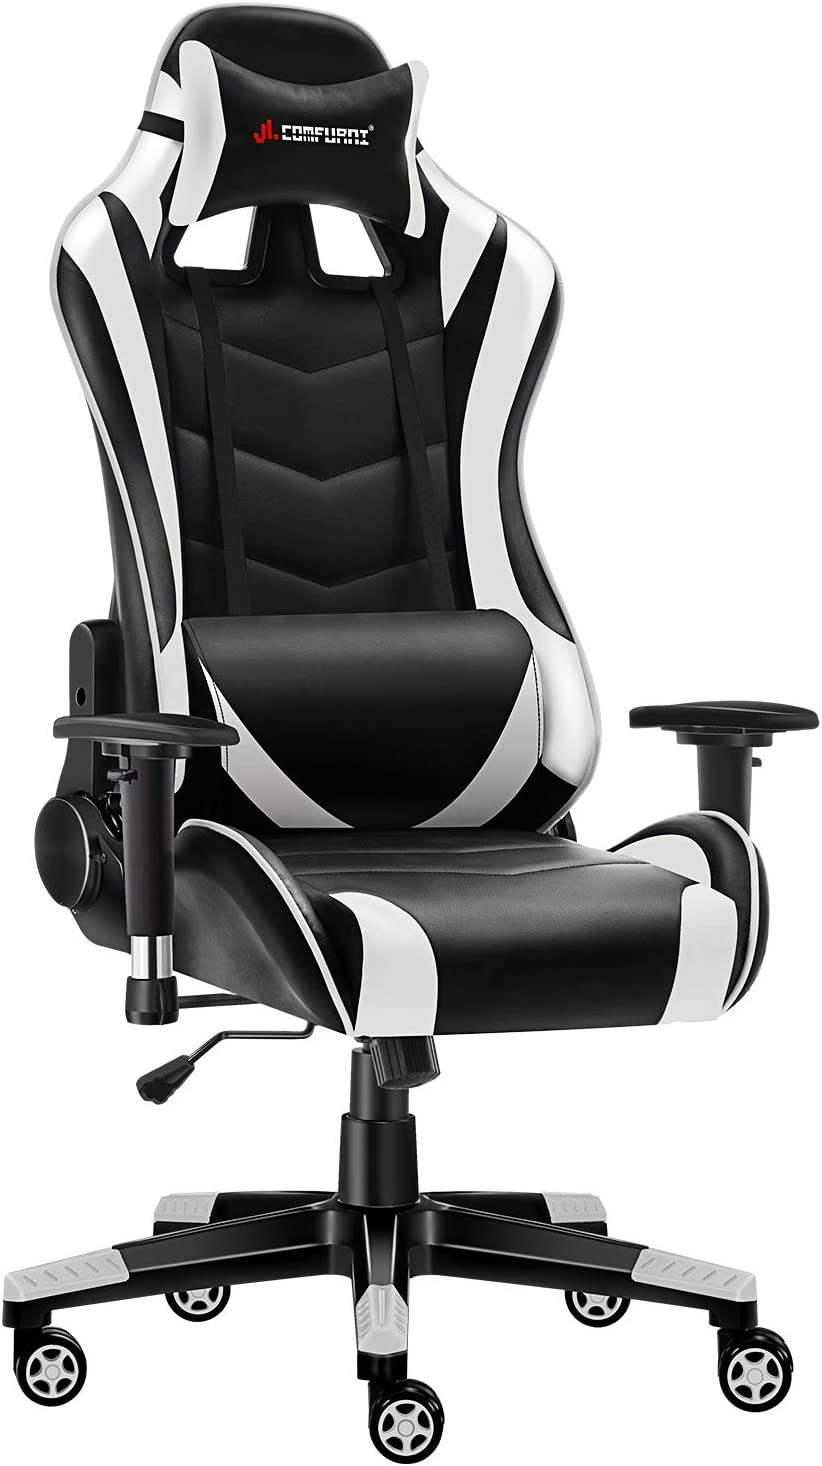 JL Comfurni Gaming Chair Chesterfield Ergonomic Swivel Office Chair